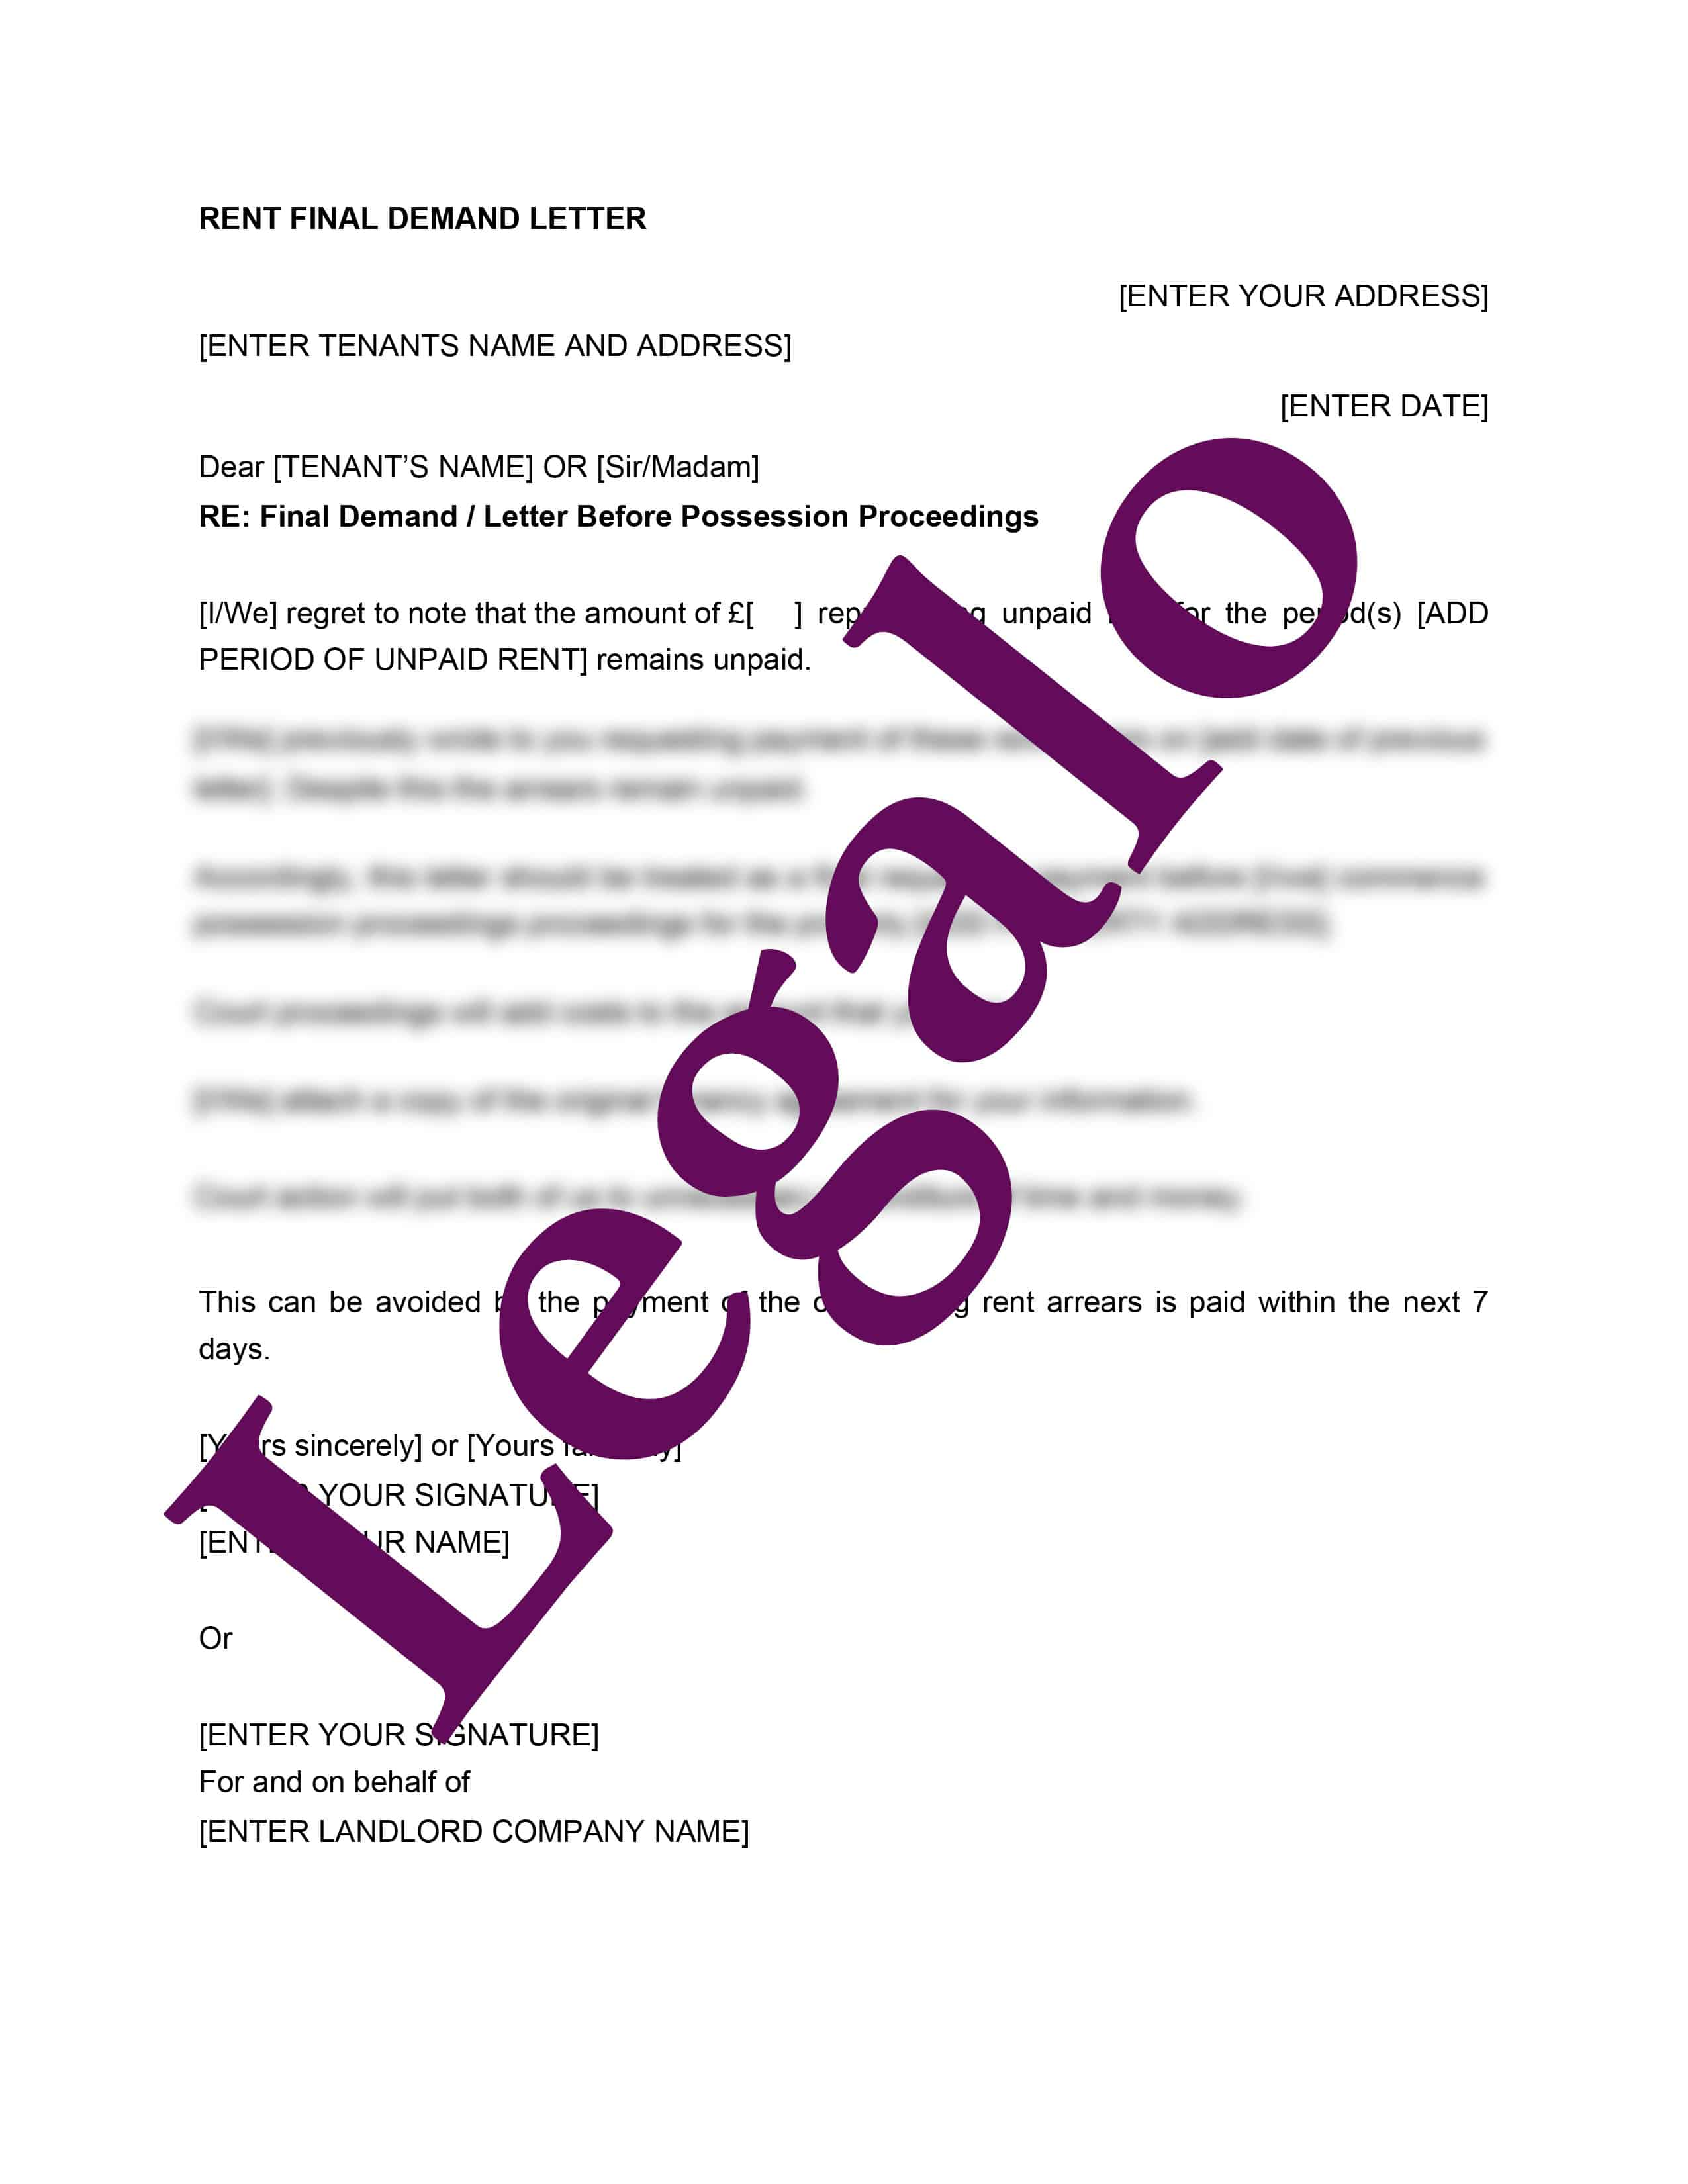 Rent final demand letter template preview image page 1